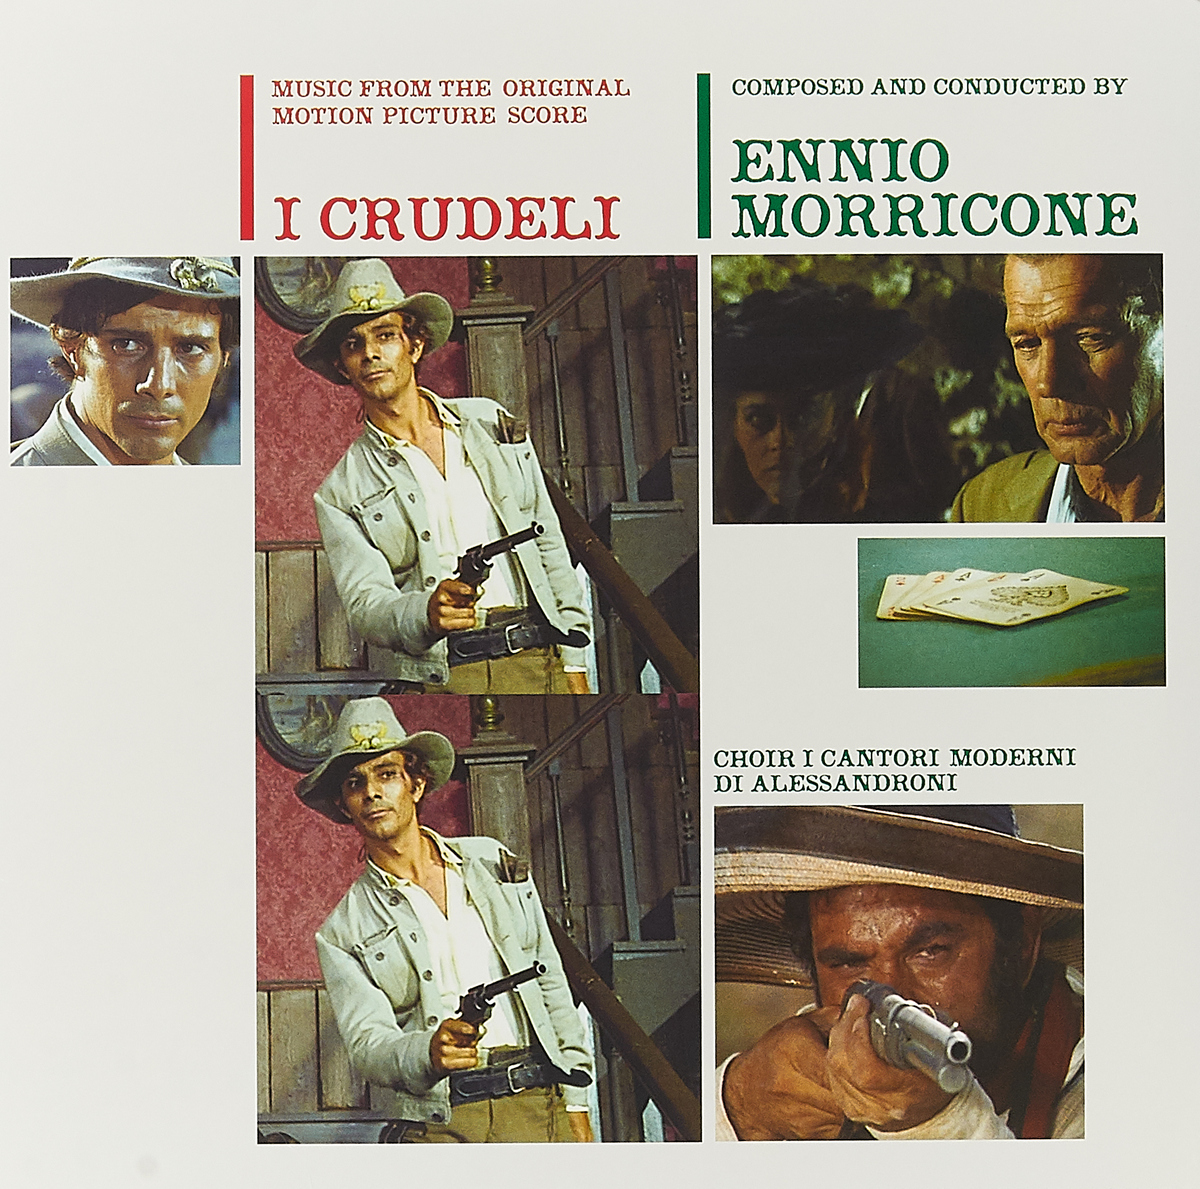 Эннио Морриконе Ennio Morricone. I Crudeli (Music From The Original Motion Picture Score) (LP) ennio morricone jubilee lp